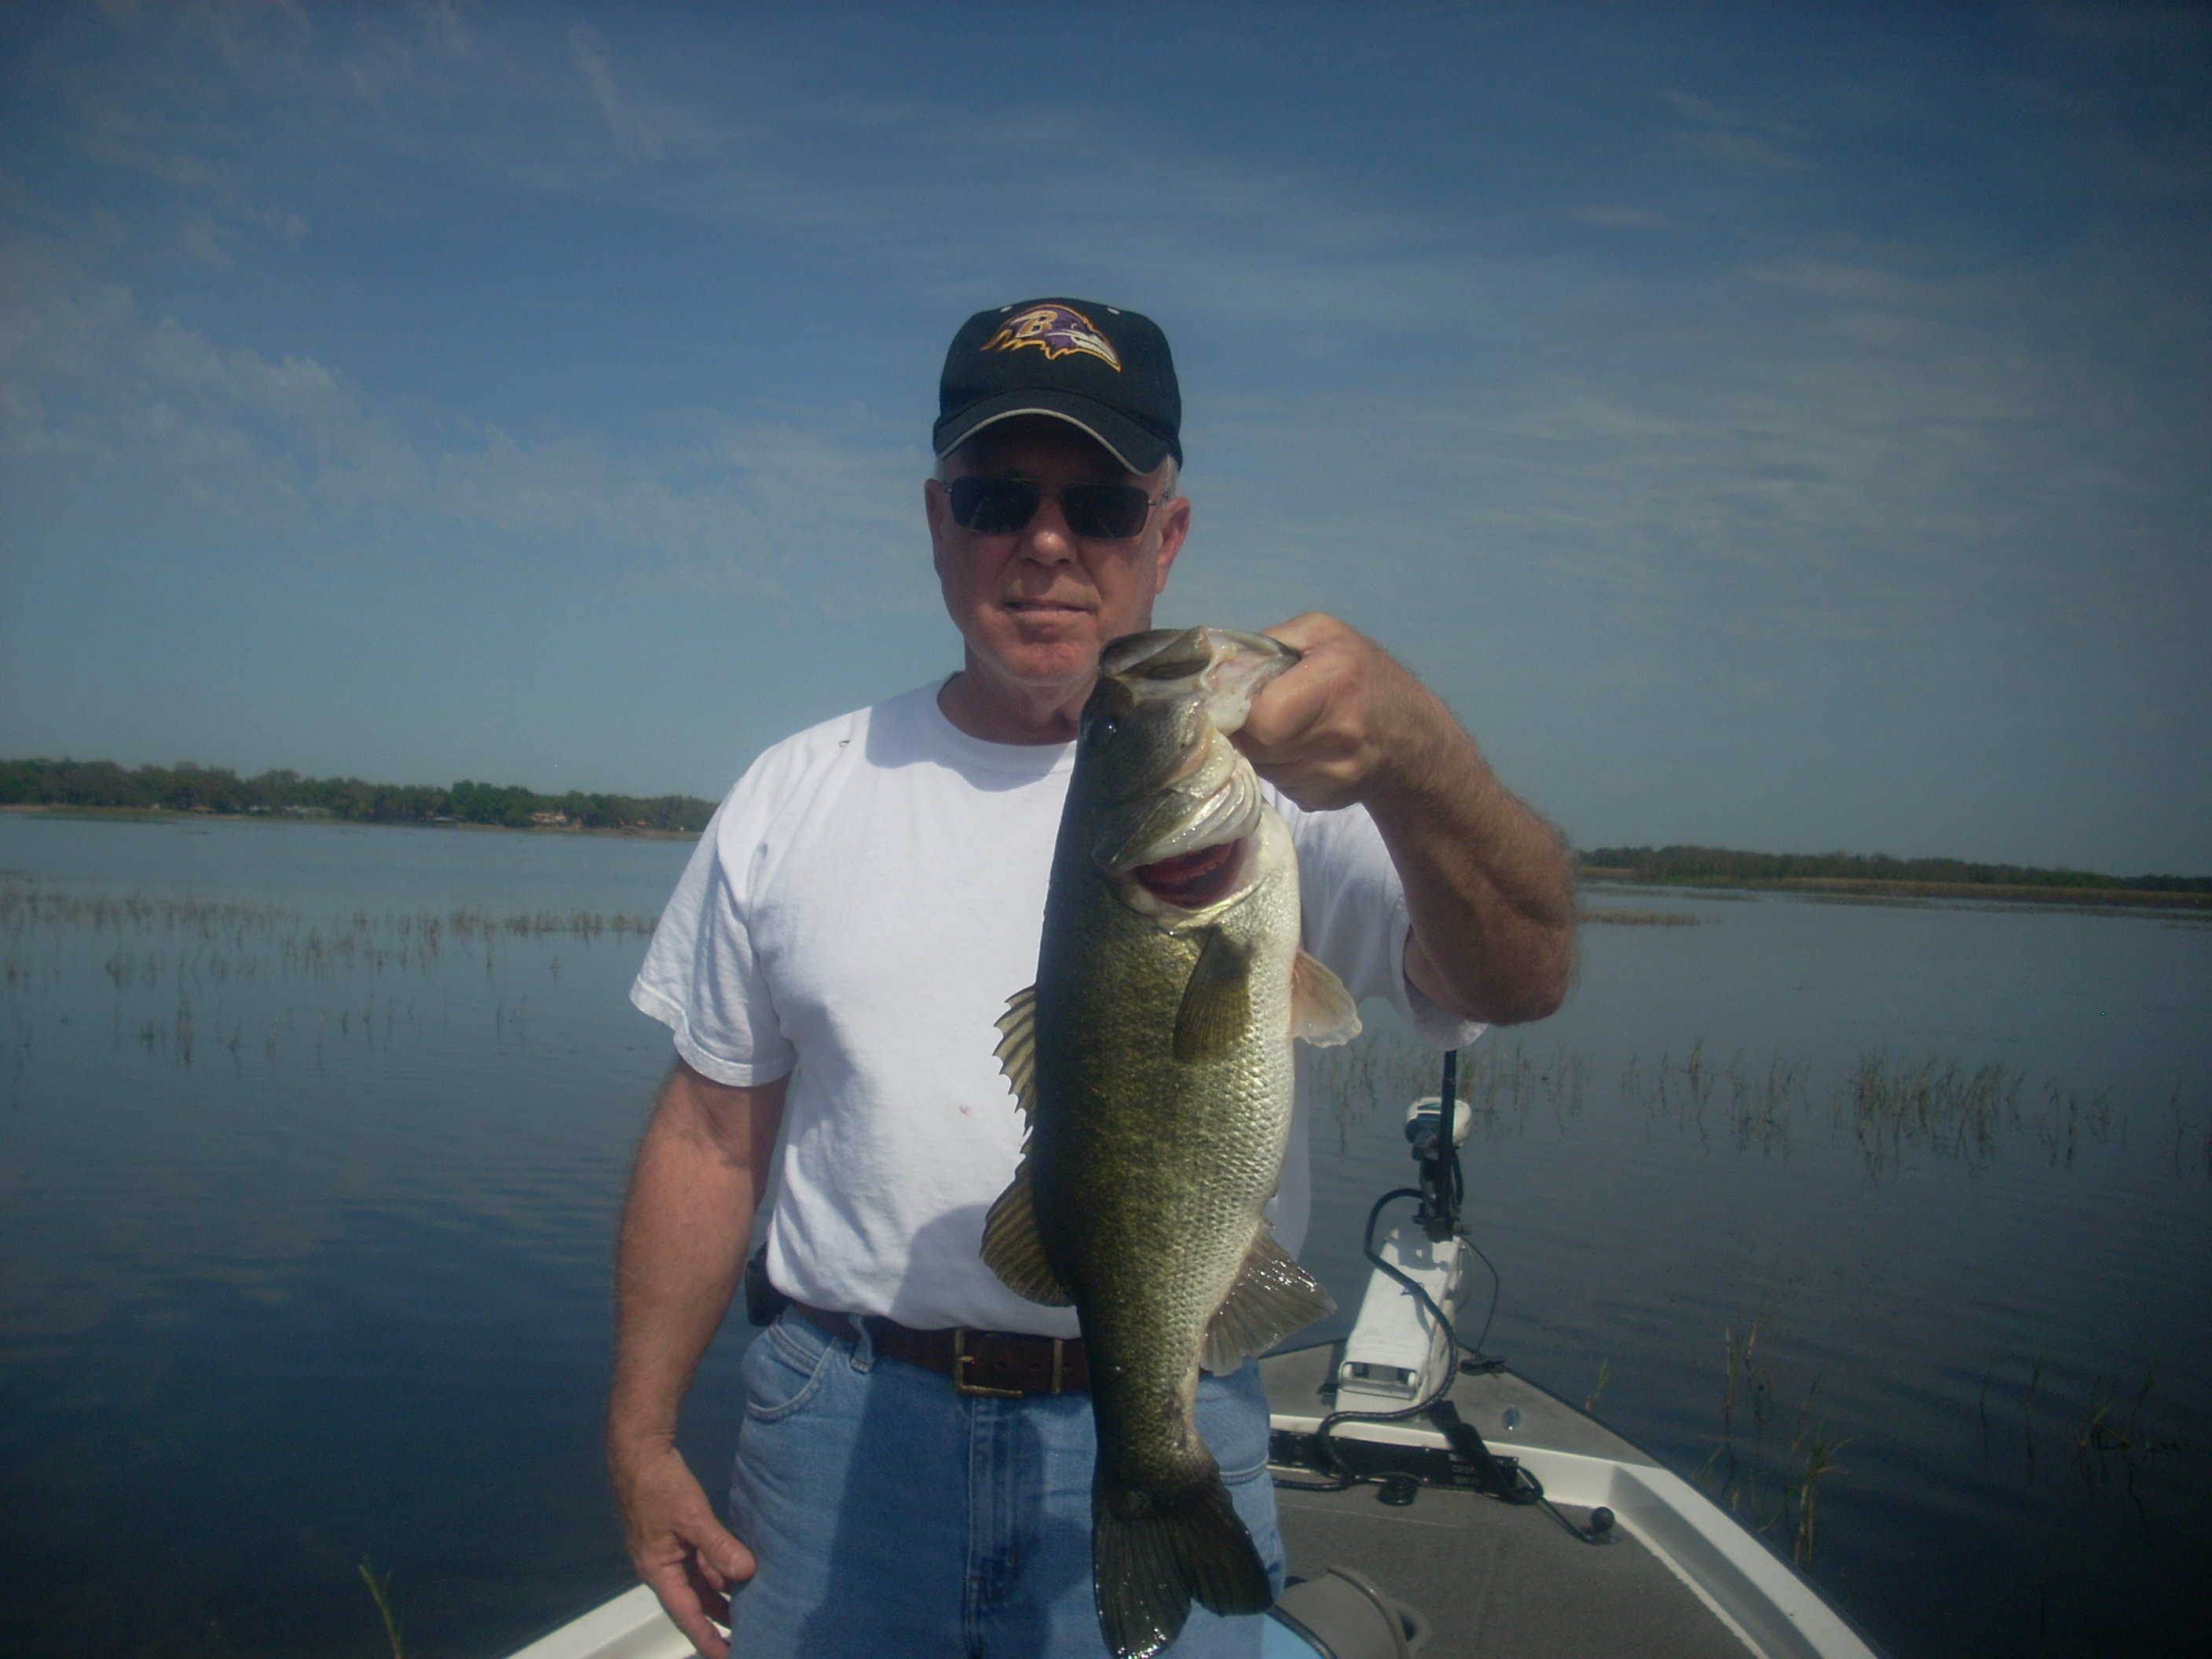 Bass fishing with capt kip central florida bass guides for Bass fishing trips